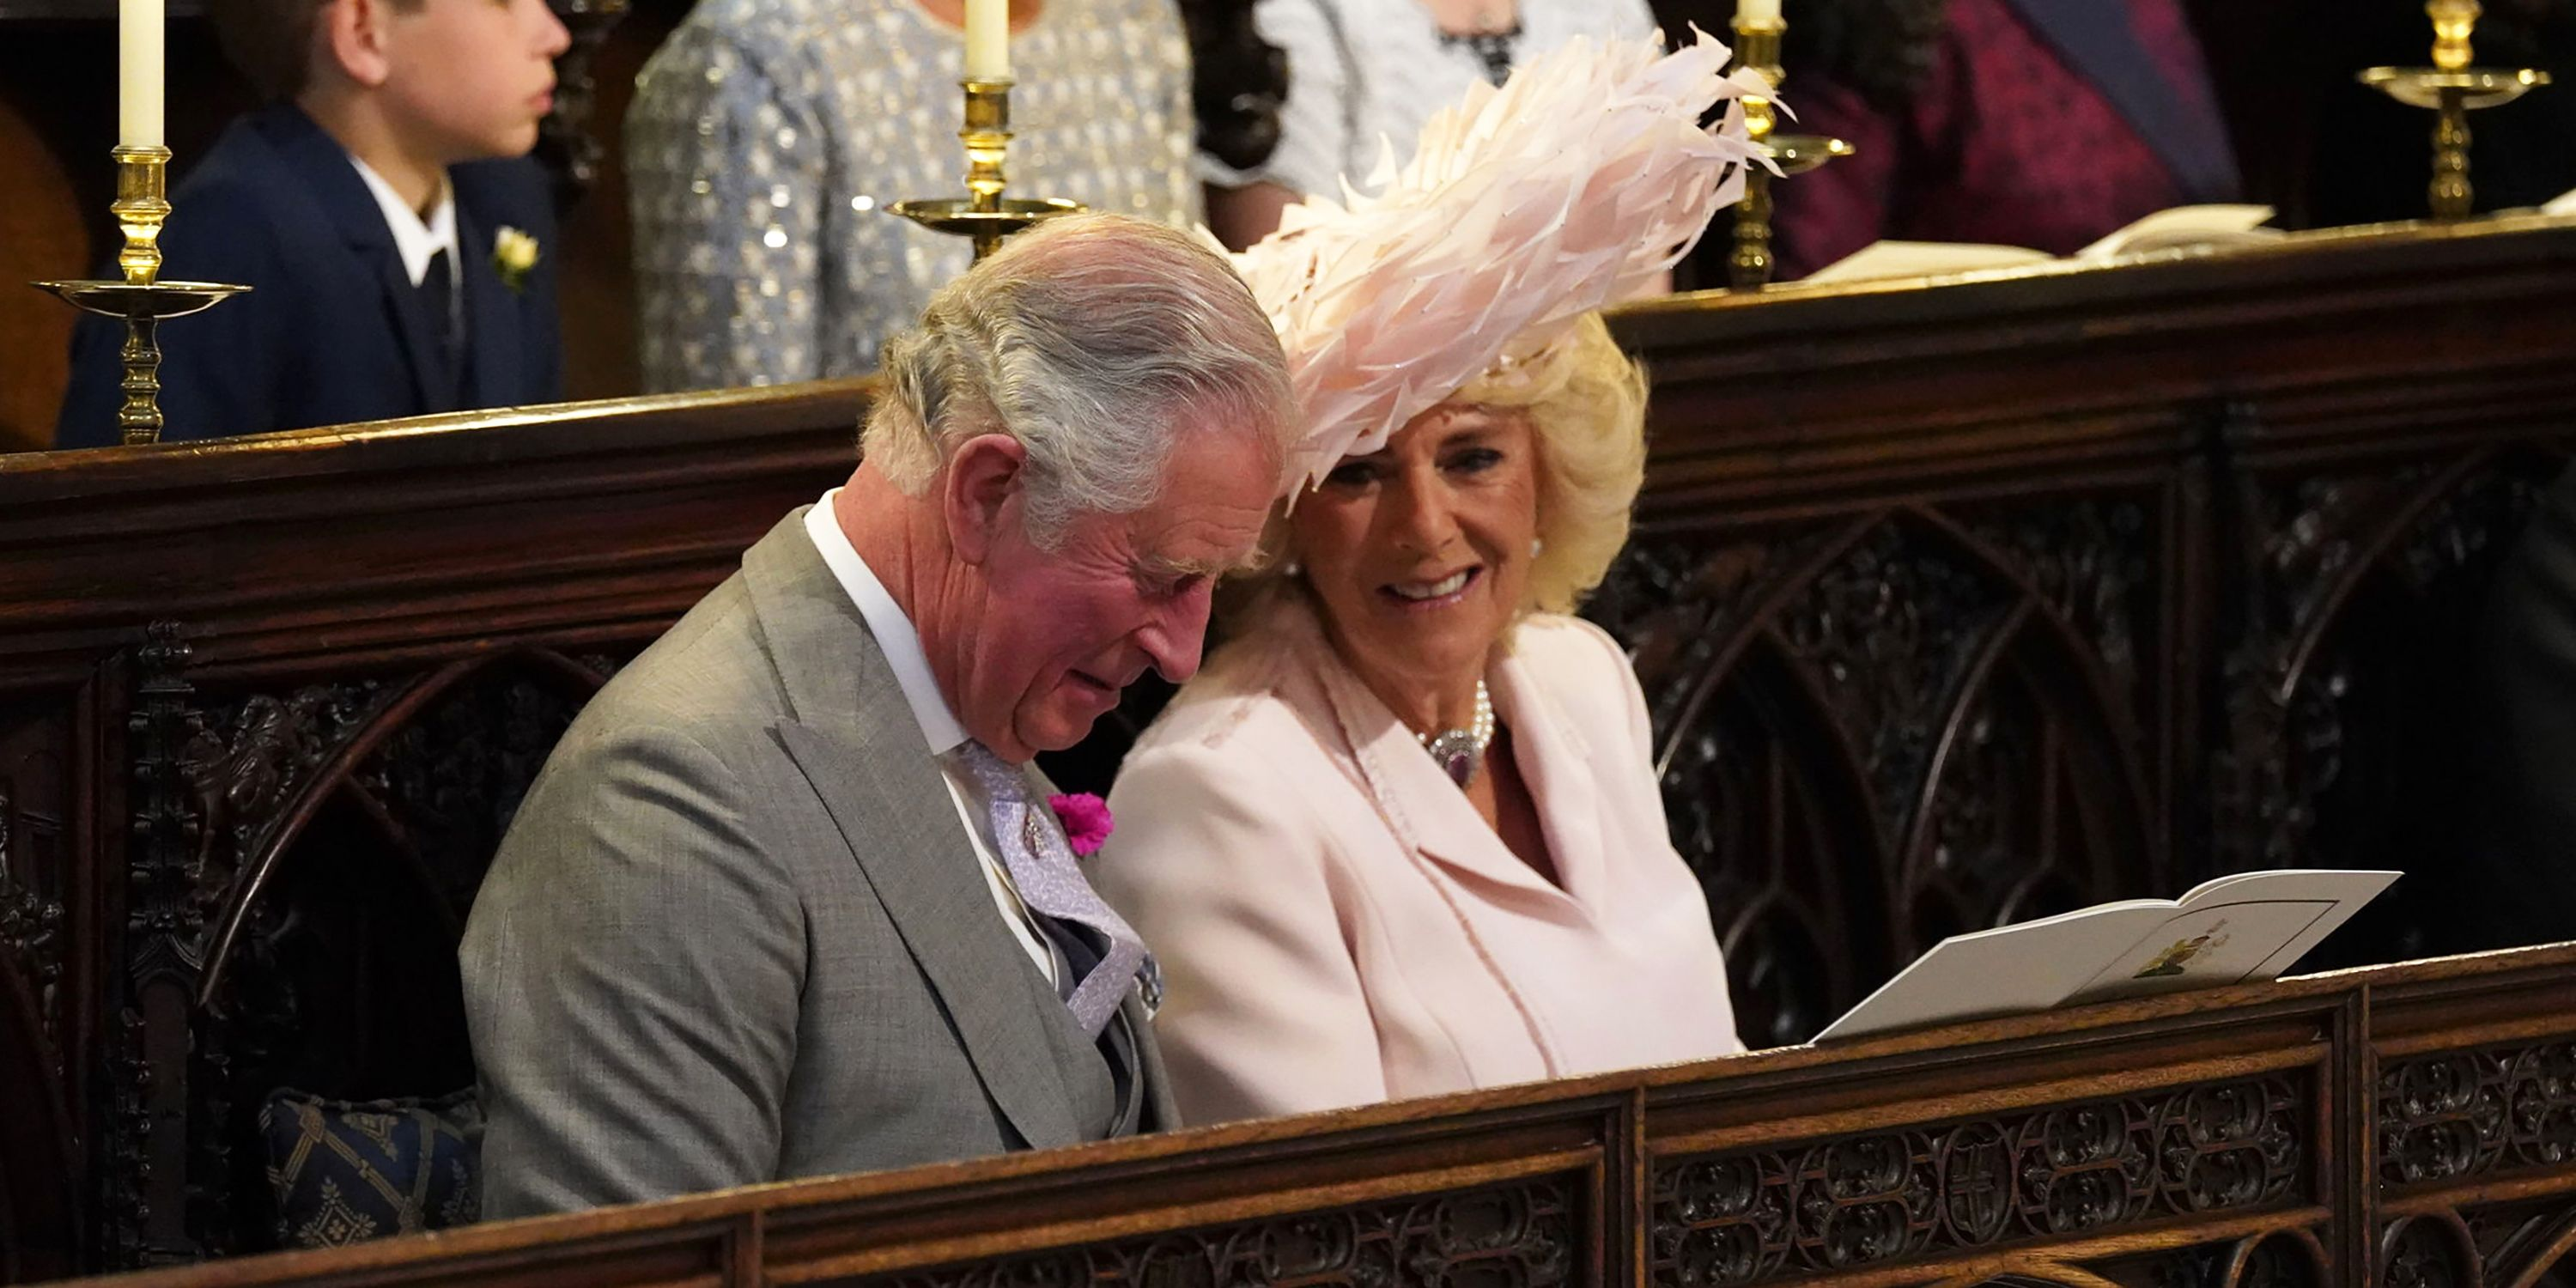 Queen Elizabeth Hochzeit Camilla Parker Bowles Royal Wedding Outfit What Camilla Wore To